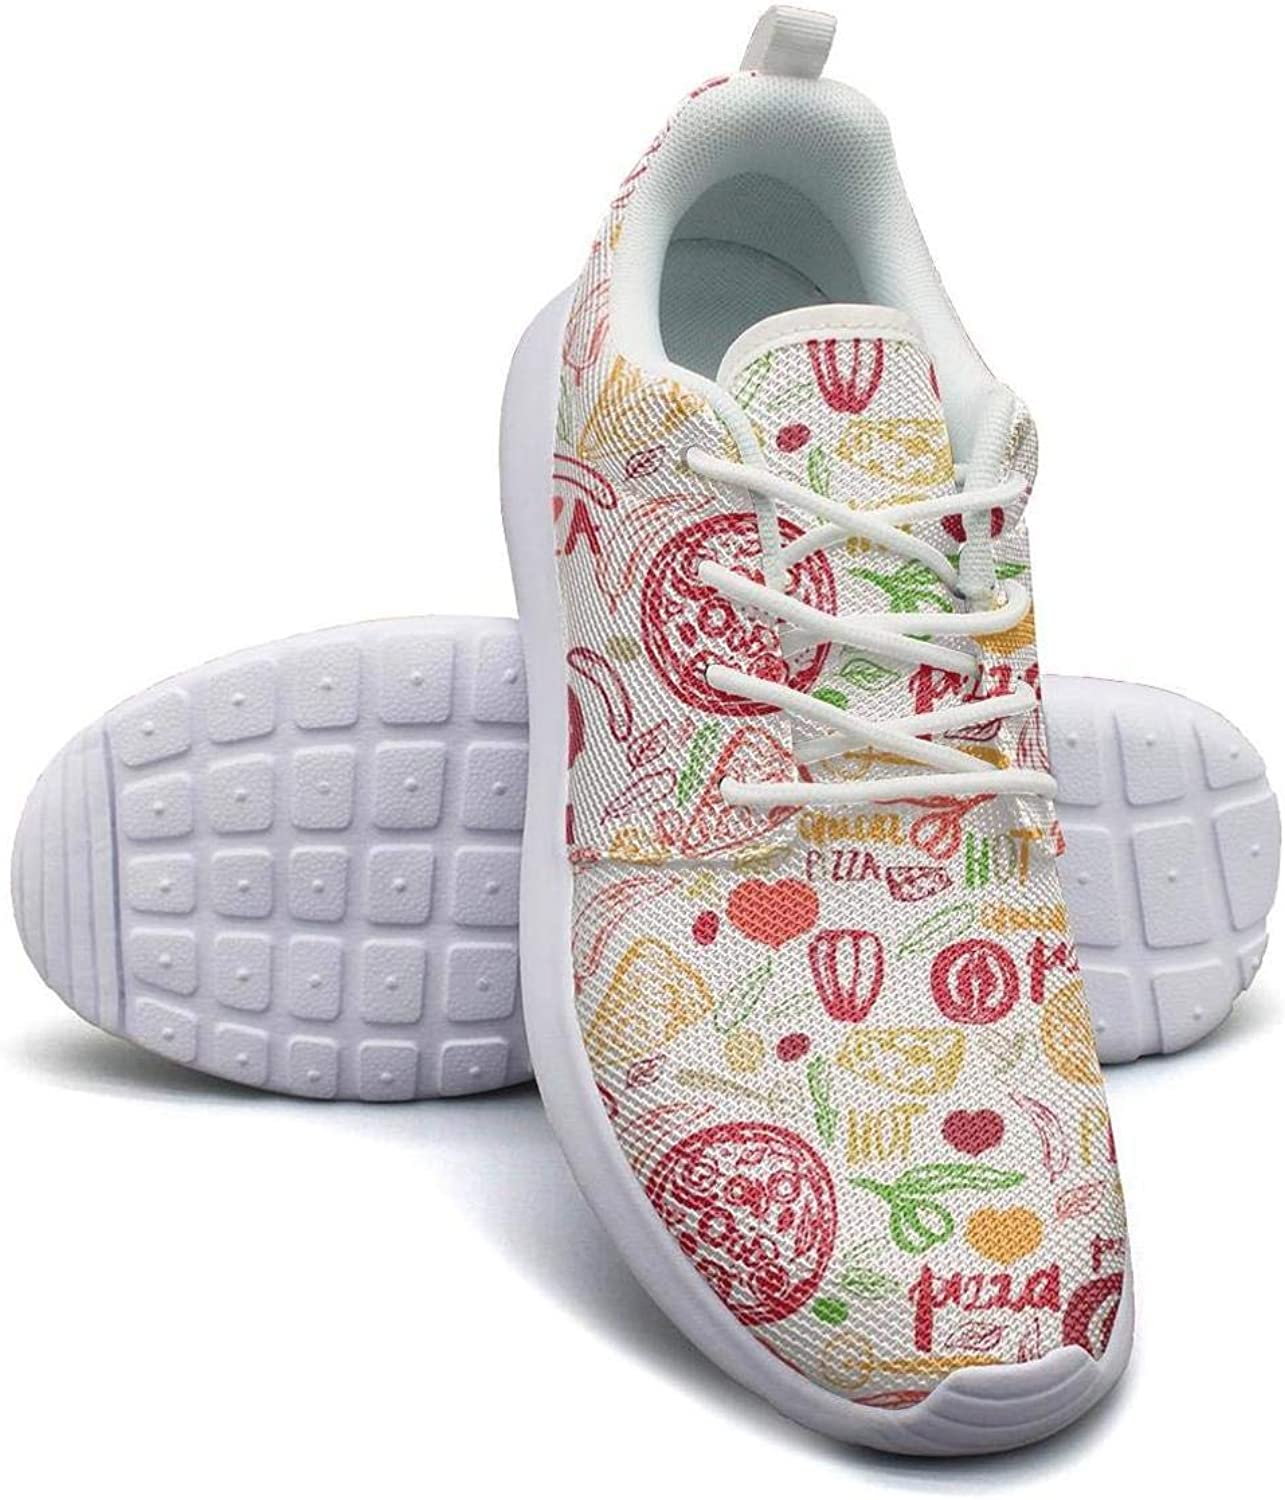 Pink Pizza Wave Basketball Sneakers for Men Print Lightweight Running Shoes